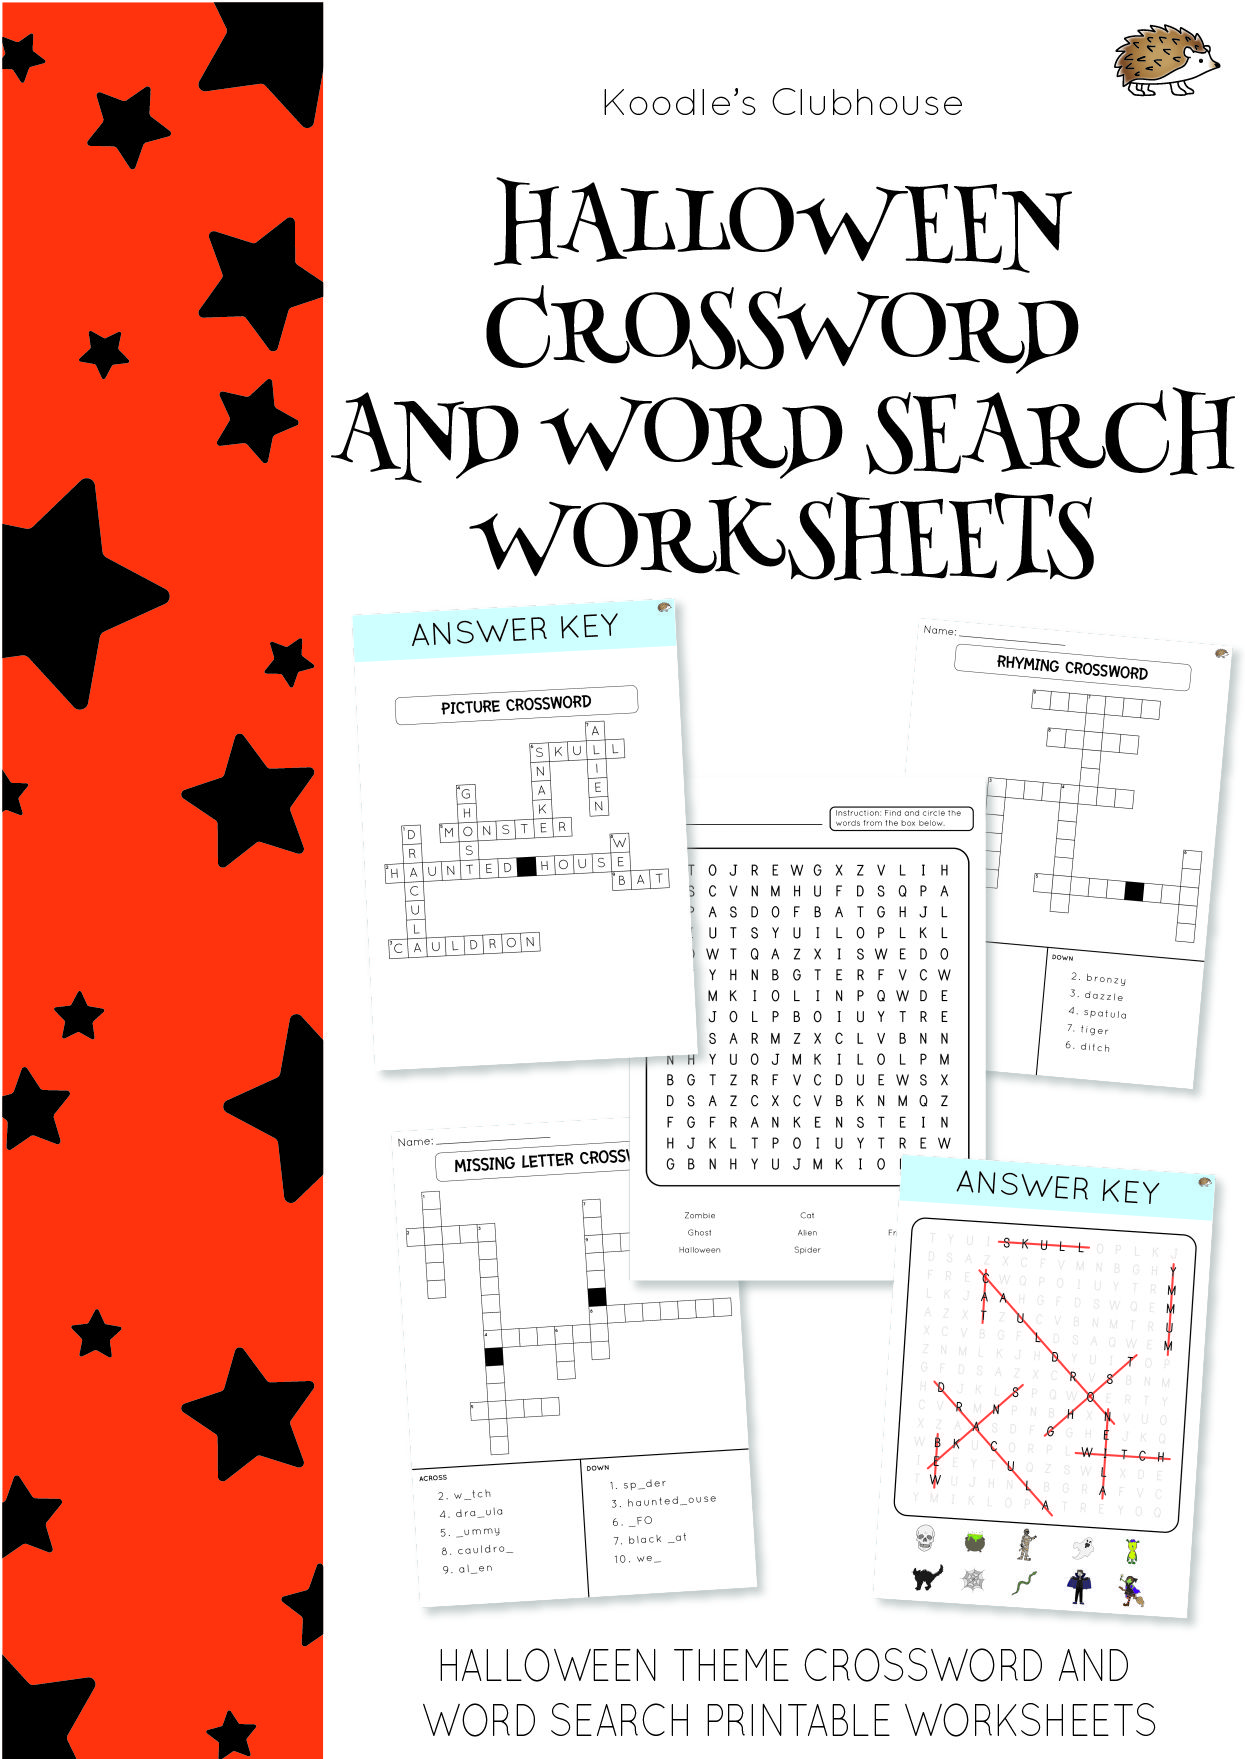 Halloween Crossword And Word Search Worksheets